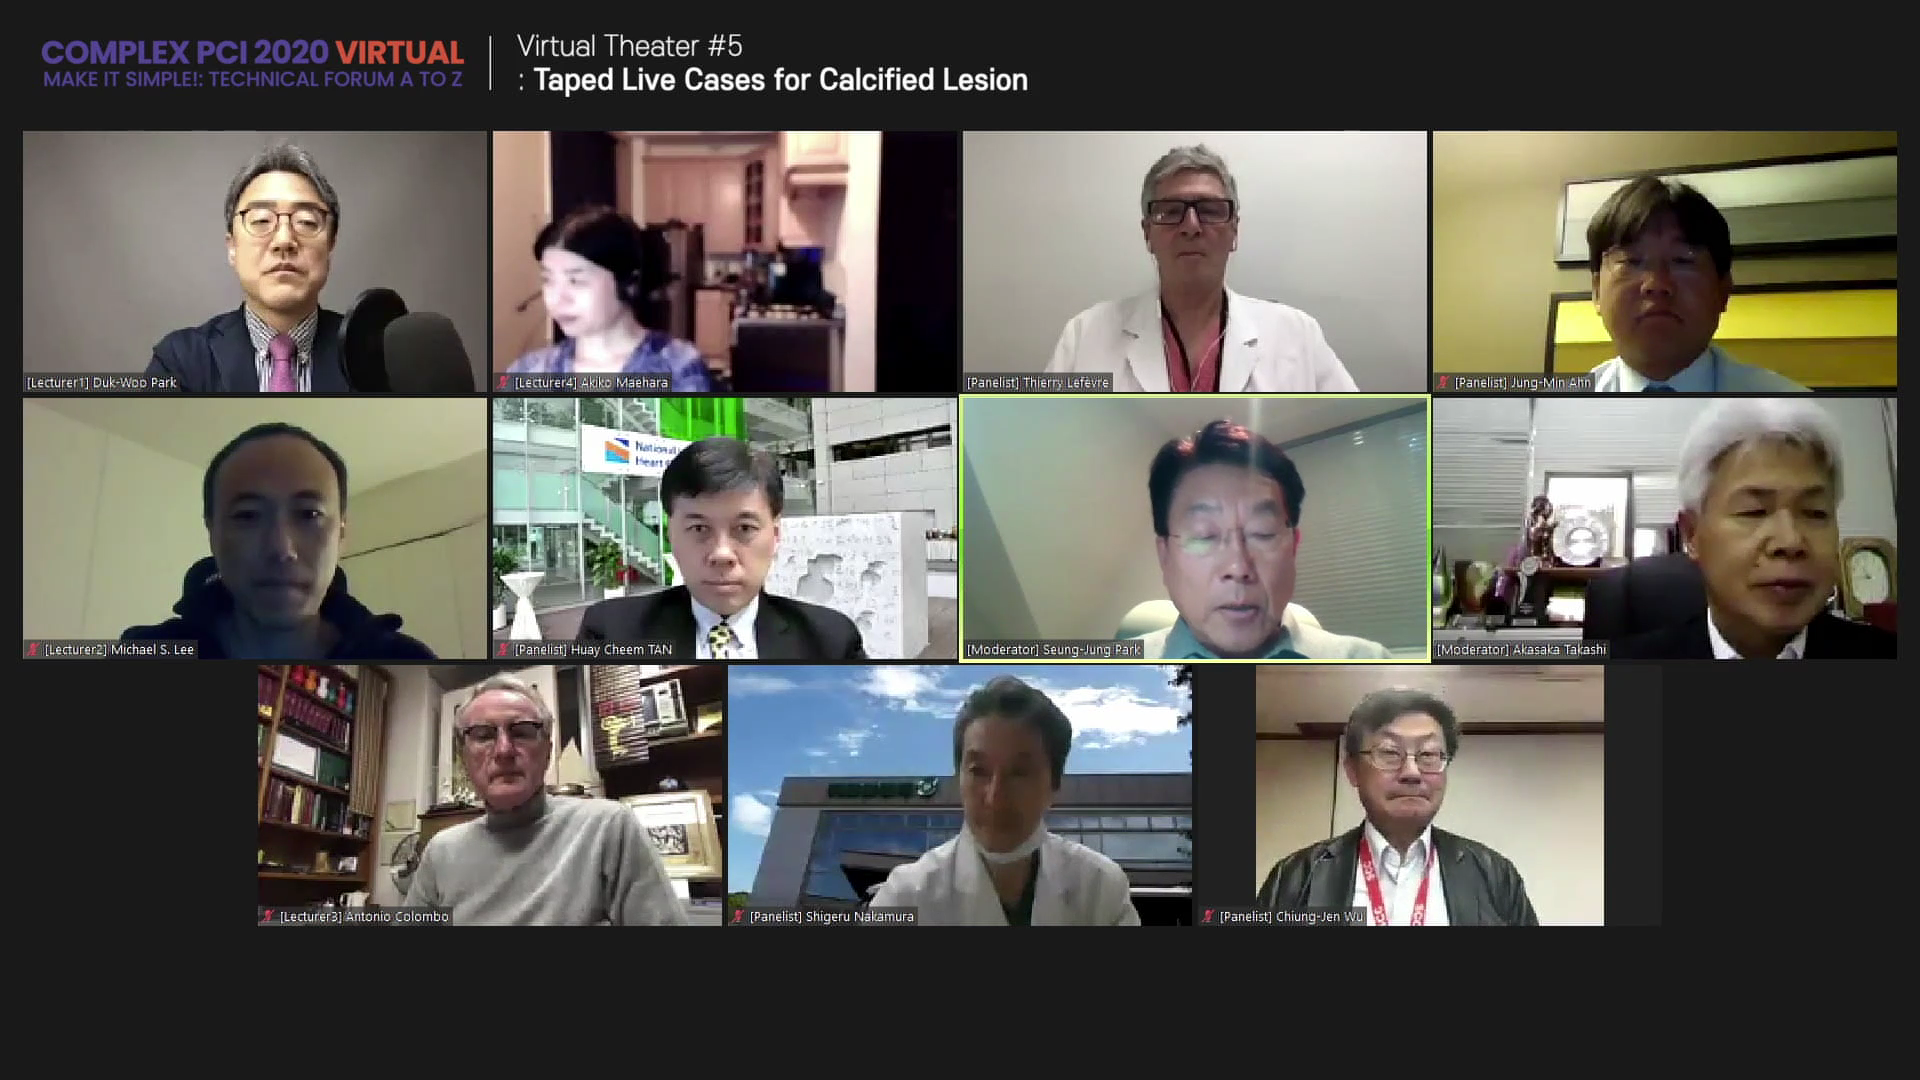 Virtual Theater #5: Taped Live Cases for Calcified Lesion